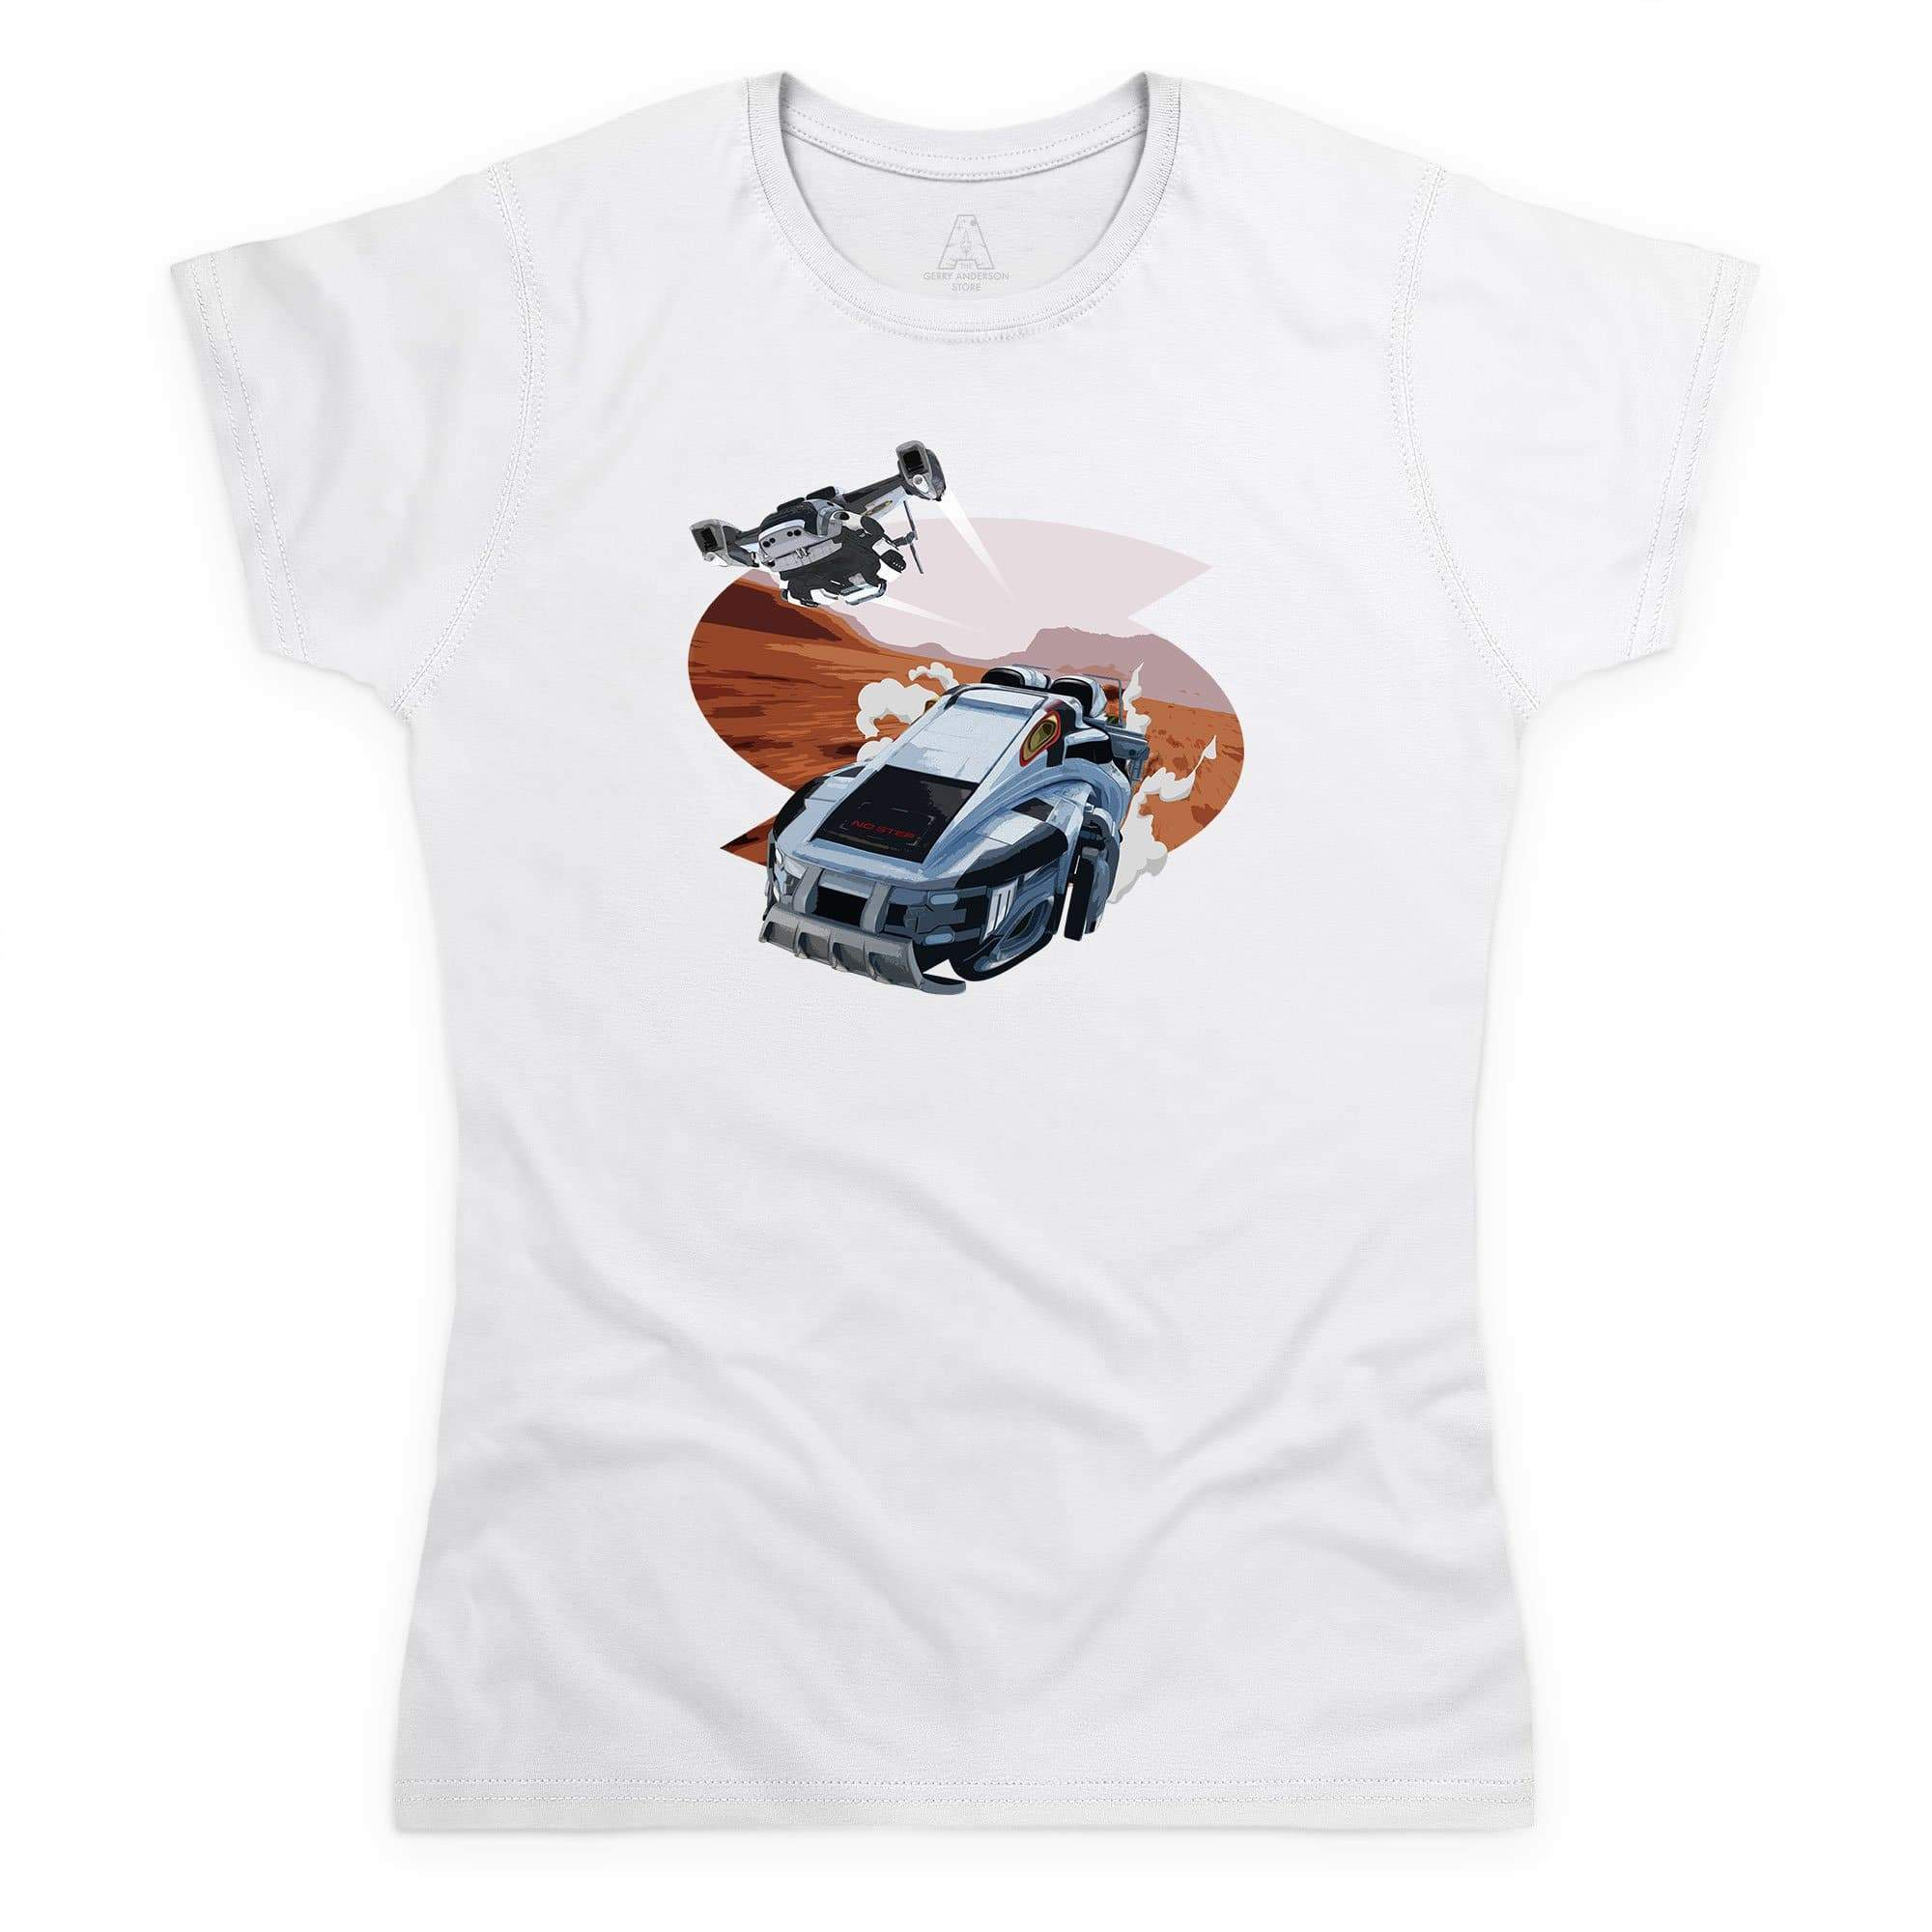 New Captain Scarlet Rhino Women's White T-Shirt [Official & Exclusive] - The Gerry Anderson Store